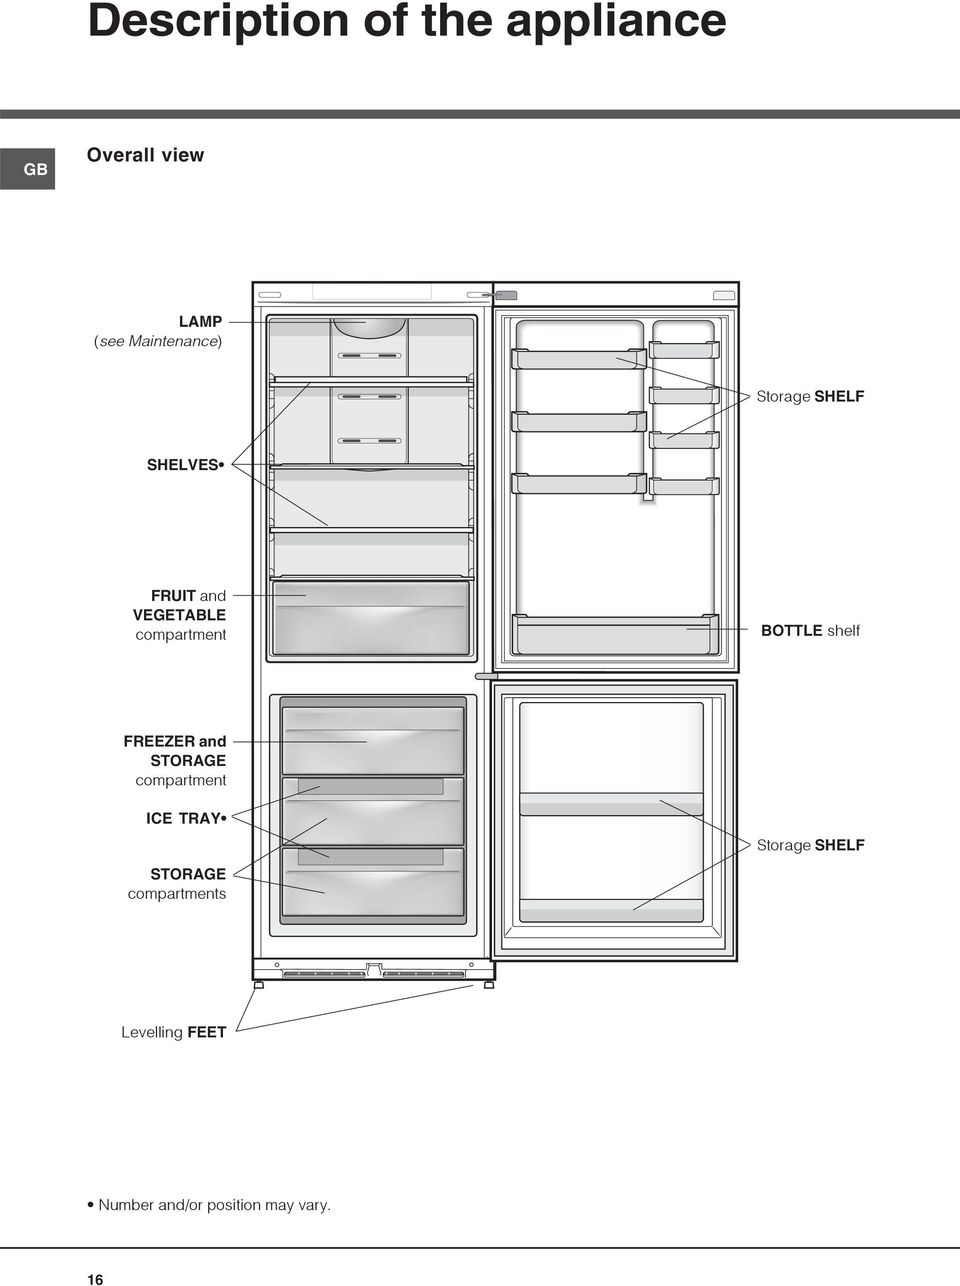 compartment BOTTLE shelf FREEZER and STORAGE compartment ICE AY